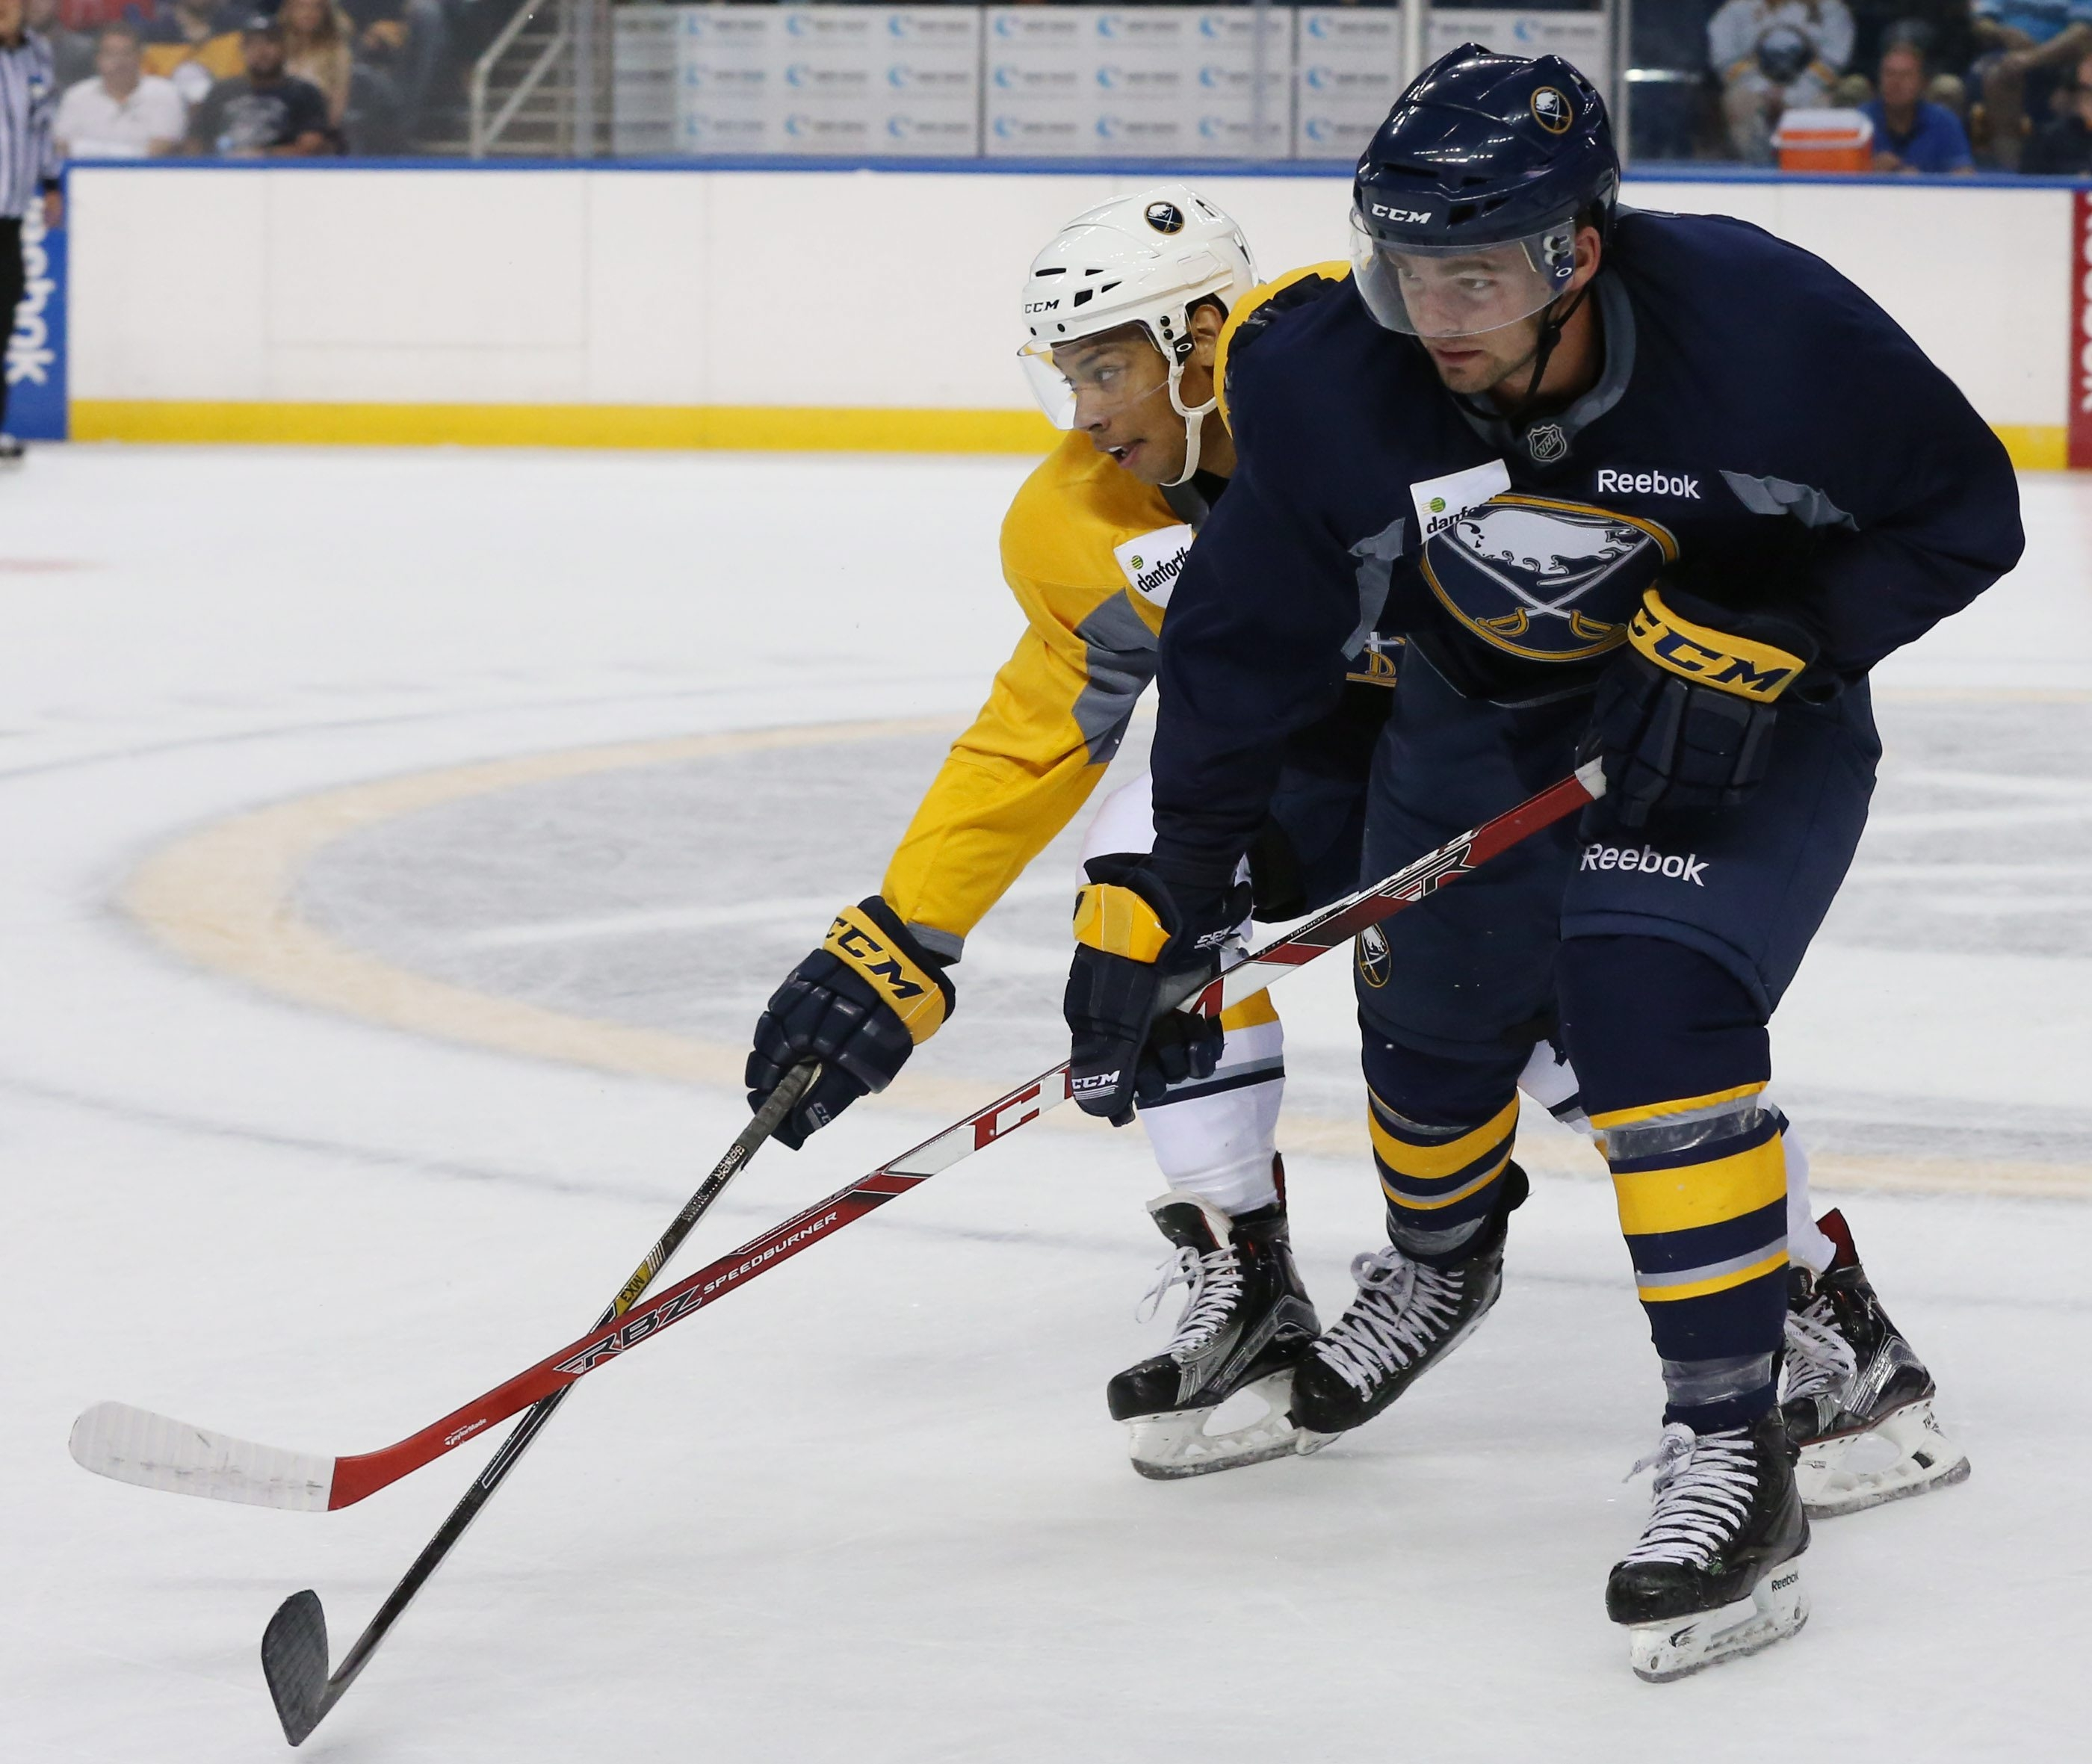 Eric Cornel skates in the first period during the Sabres Blue and Gold Scrimmage at First Niagara Center in Buffalo on July 10, 2015.